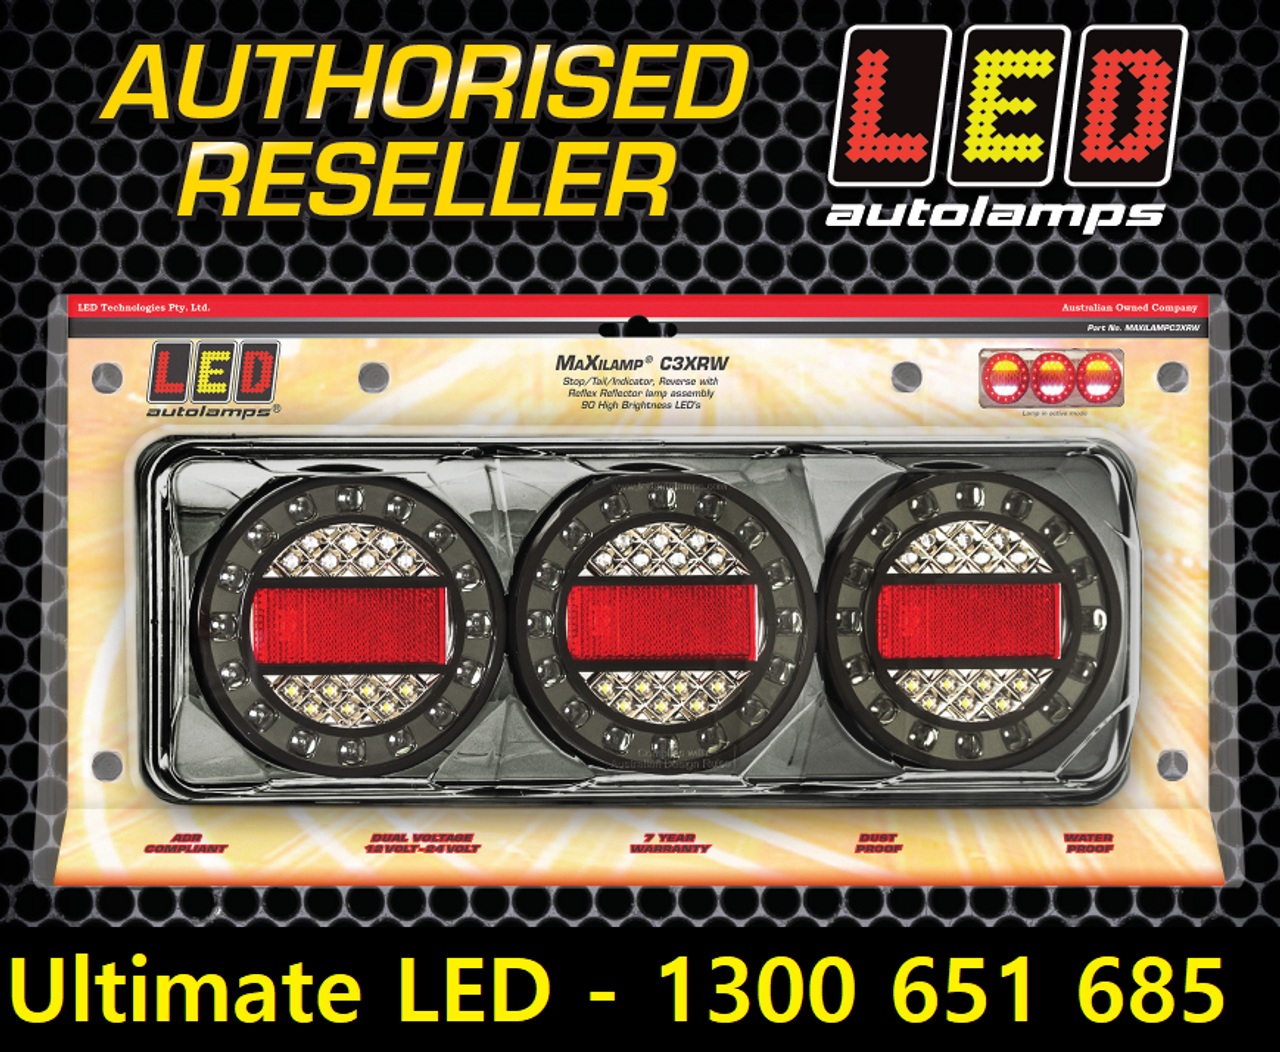 Genuine Maxilamp Combination Tail Light. Medium Tray & Truck Series Light. Diffused Tail Function. Sequential Indicator. Clear Lens. Stop, Tail, Indicator & Reverse Lights. Twin Pack. Multi-Volt. Autolamp. 385ARWM-2. 7 Year Warranty